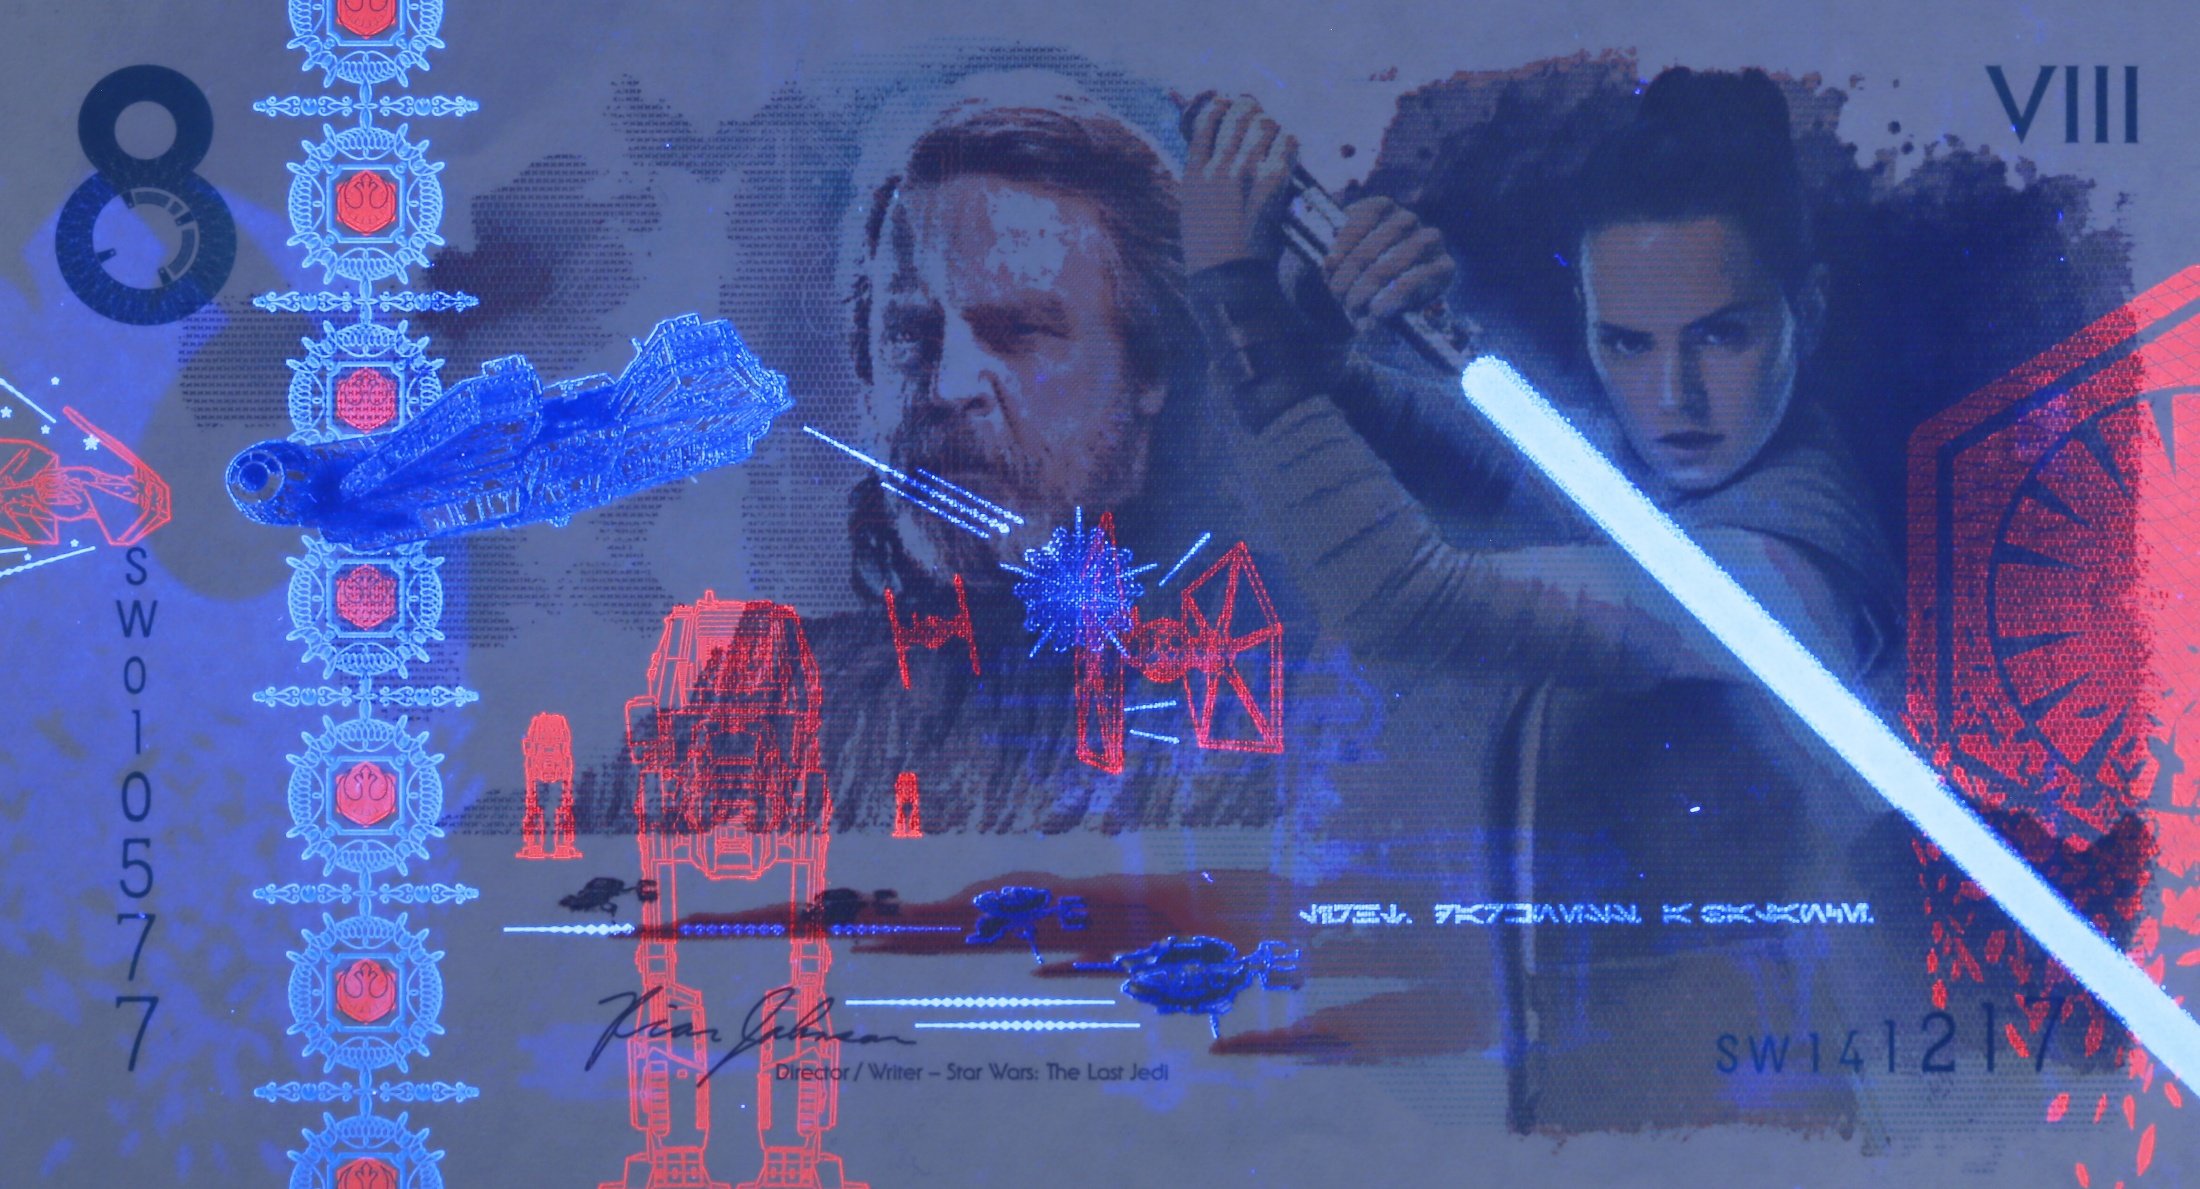 Thumbnail for The Star Wars: The Last Jedi Commemorative Note